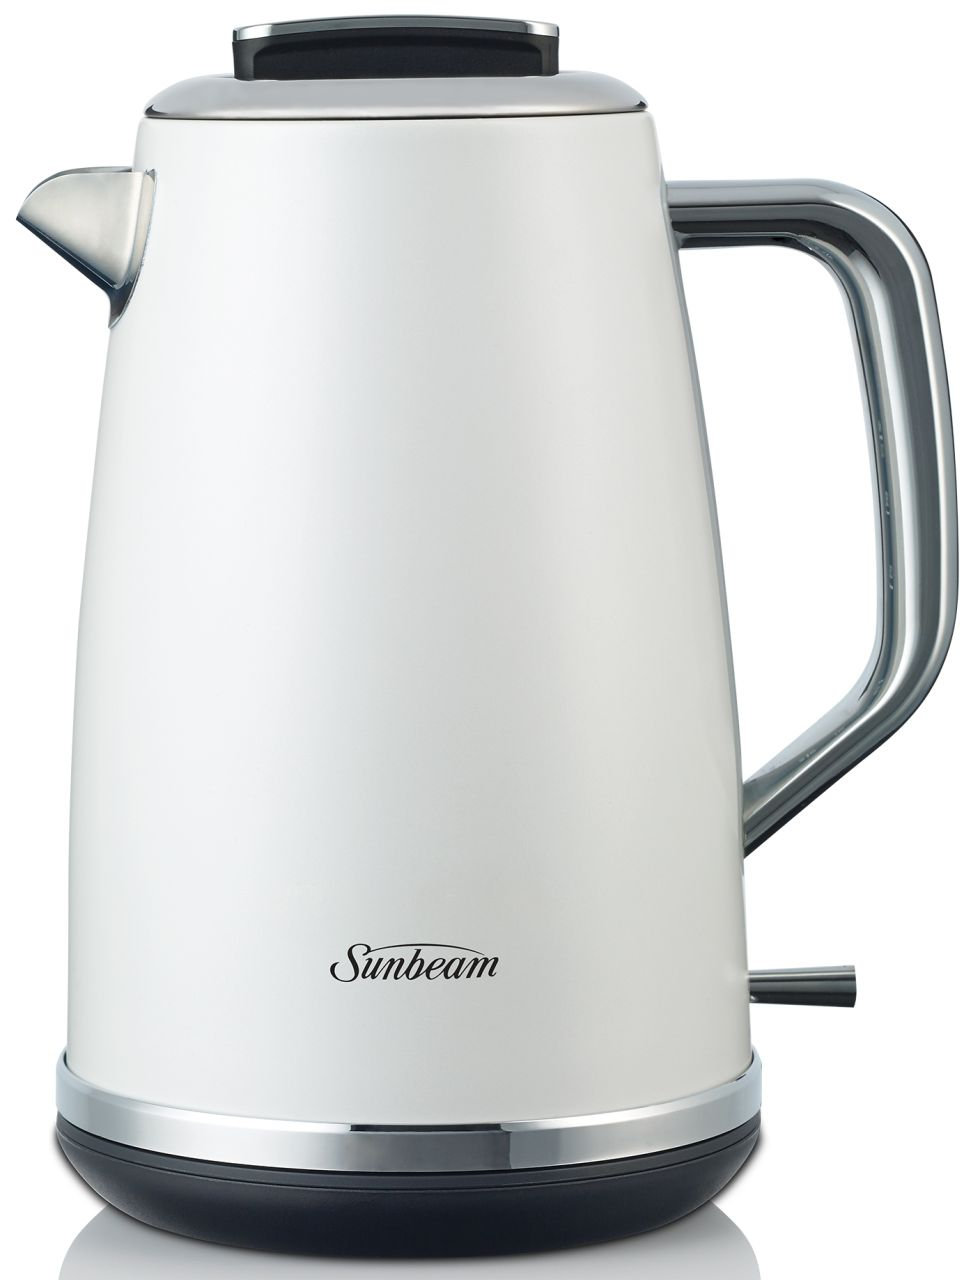 Sunbeam - 1.7L Gallerie Collection Kettle - White